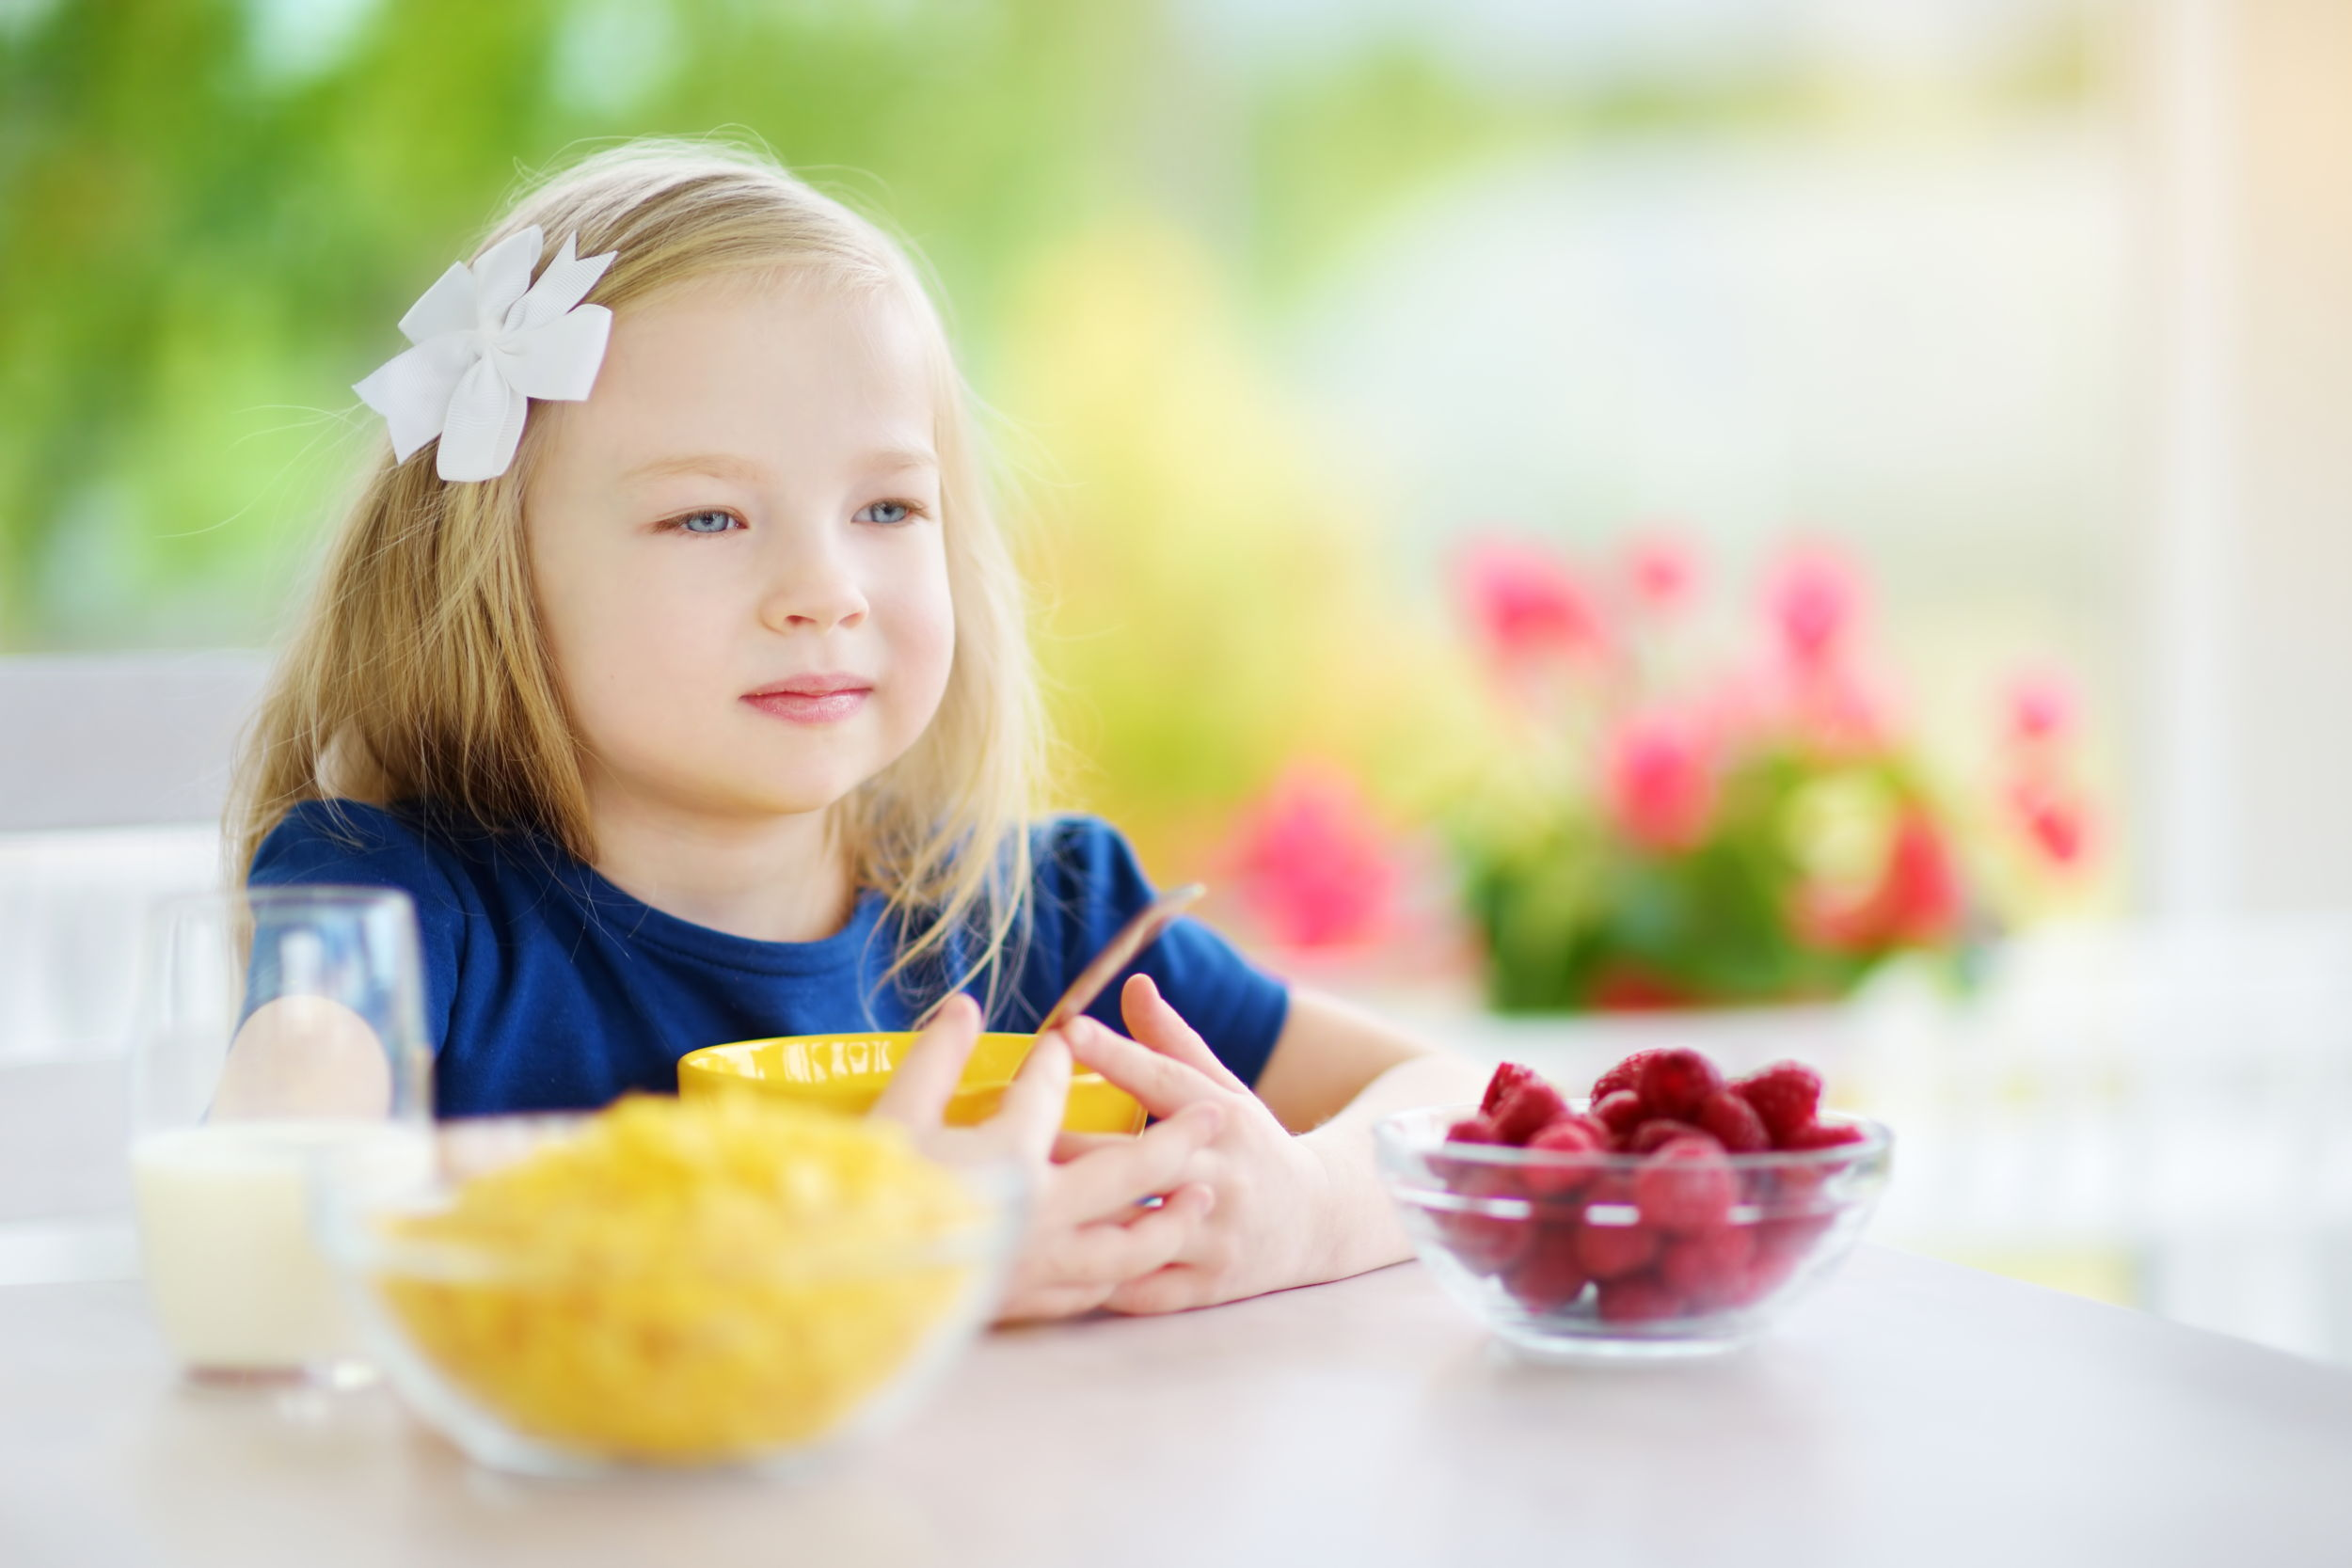 daily routine for kids l daily schedule for kids l routine for kids l kids morning routine l morning routine for kids